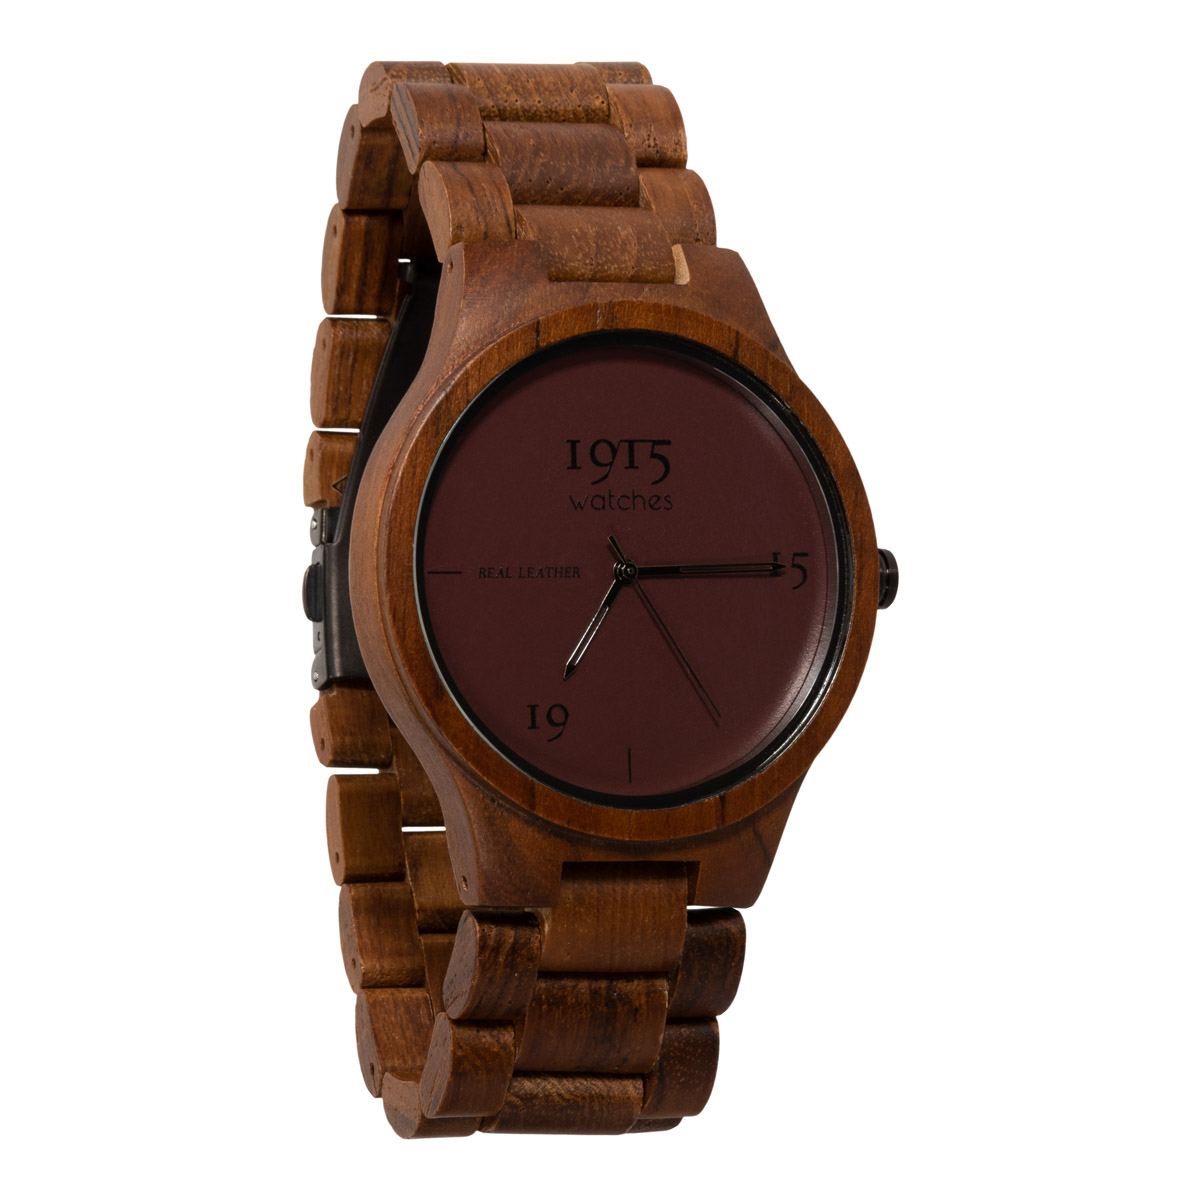 Image of 1915 Watch Real Leather 46mm Horloge Bordeaux 12037315